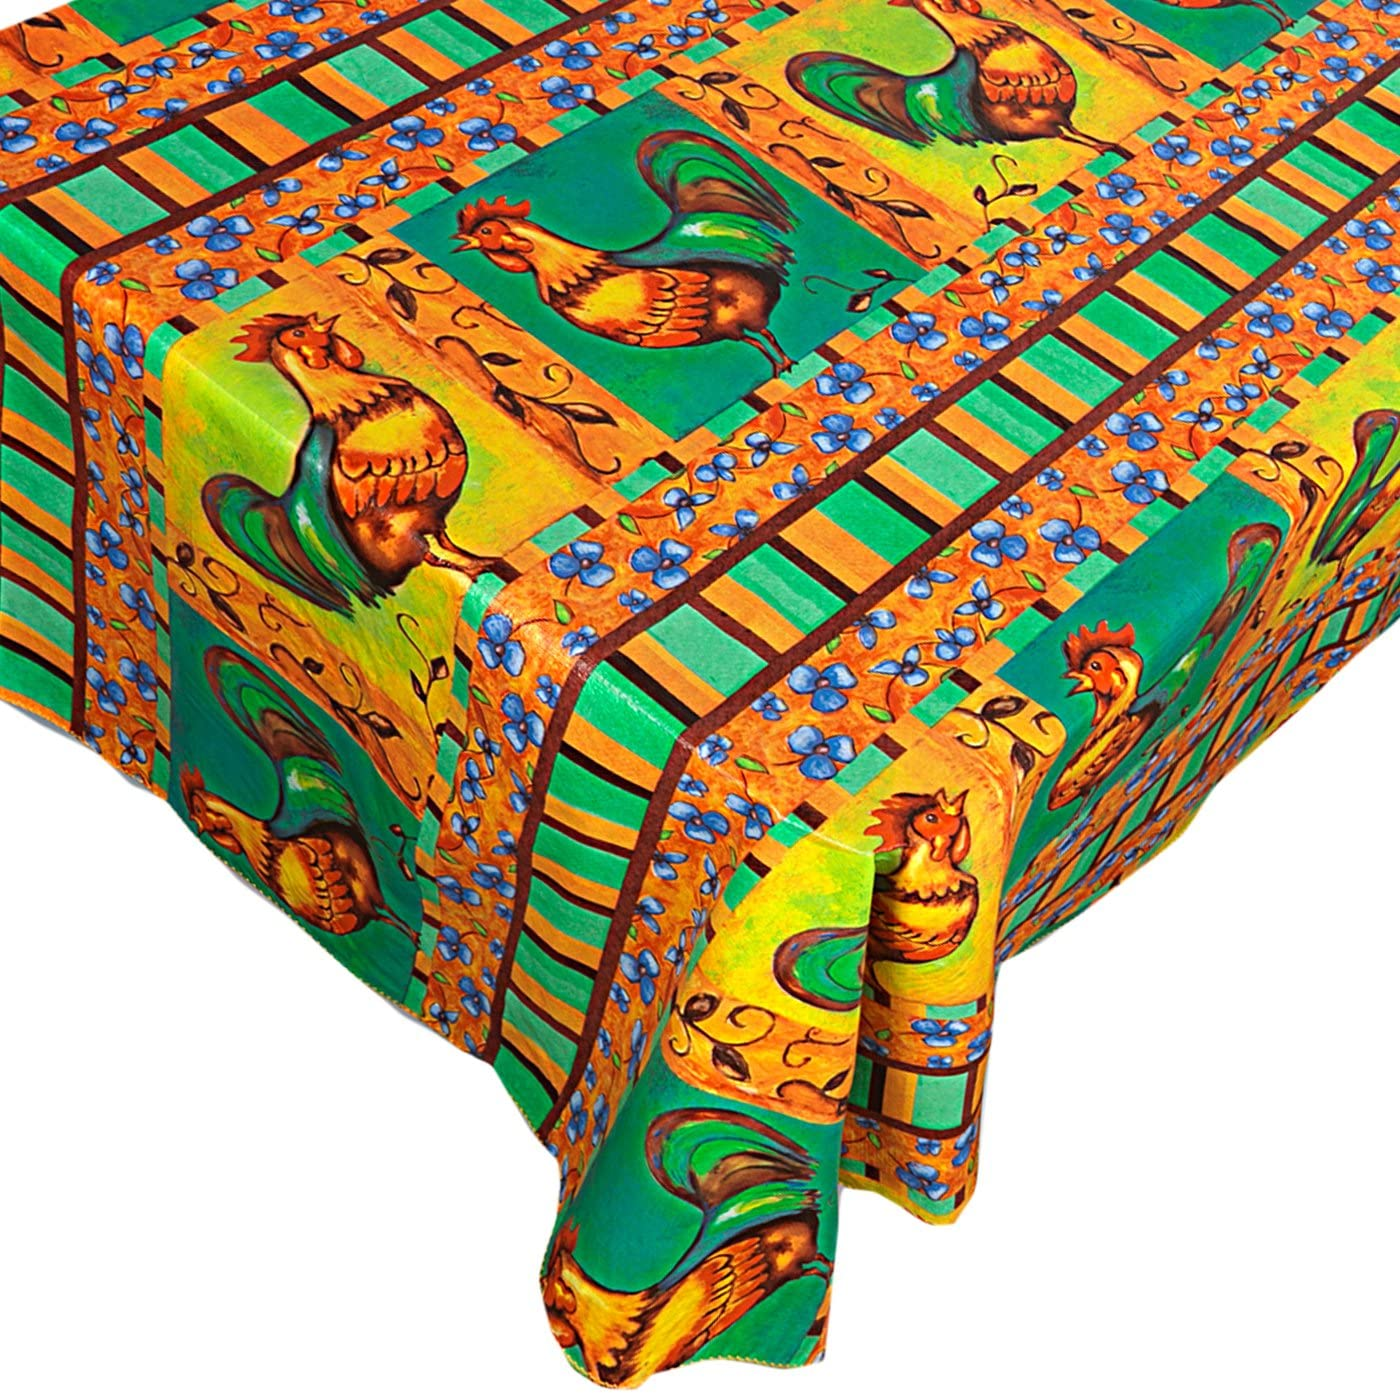 Home Bargains Plus Mod Rooster Vinyl Flannel Backed Tablecloth Contemporary Print Indoor/Outdoor Kitchen, Picnic and Barbeque Vinyl Tablecloth, 60 Inch Round